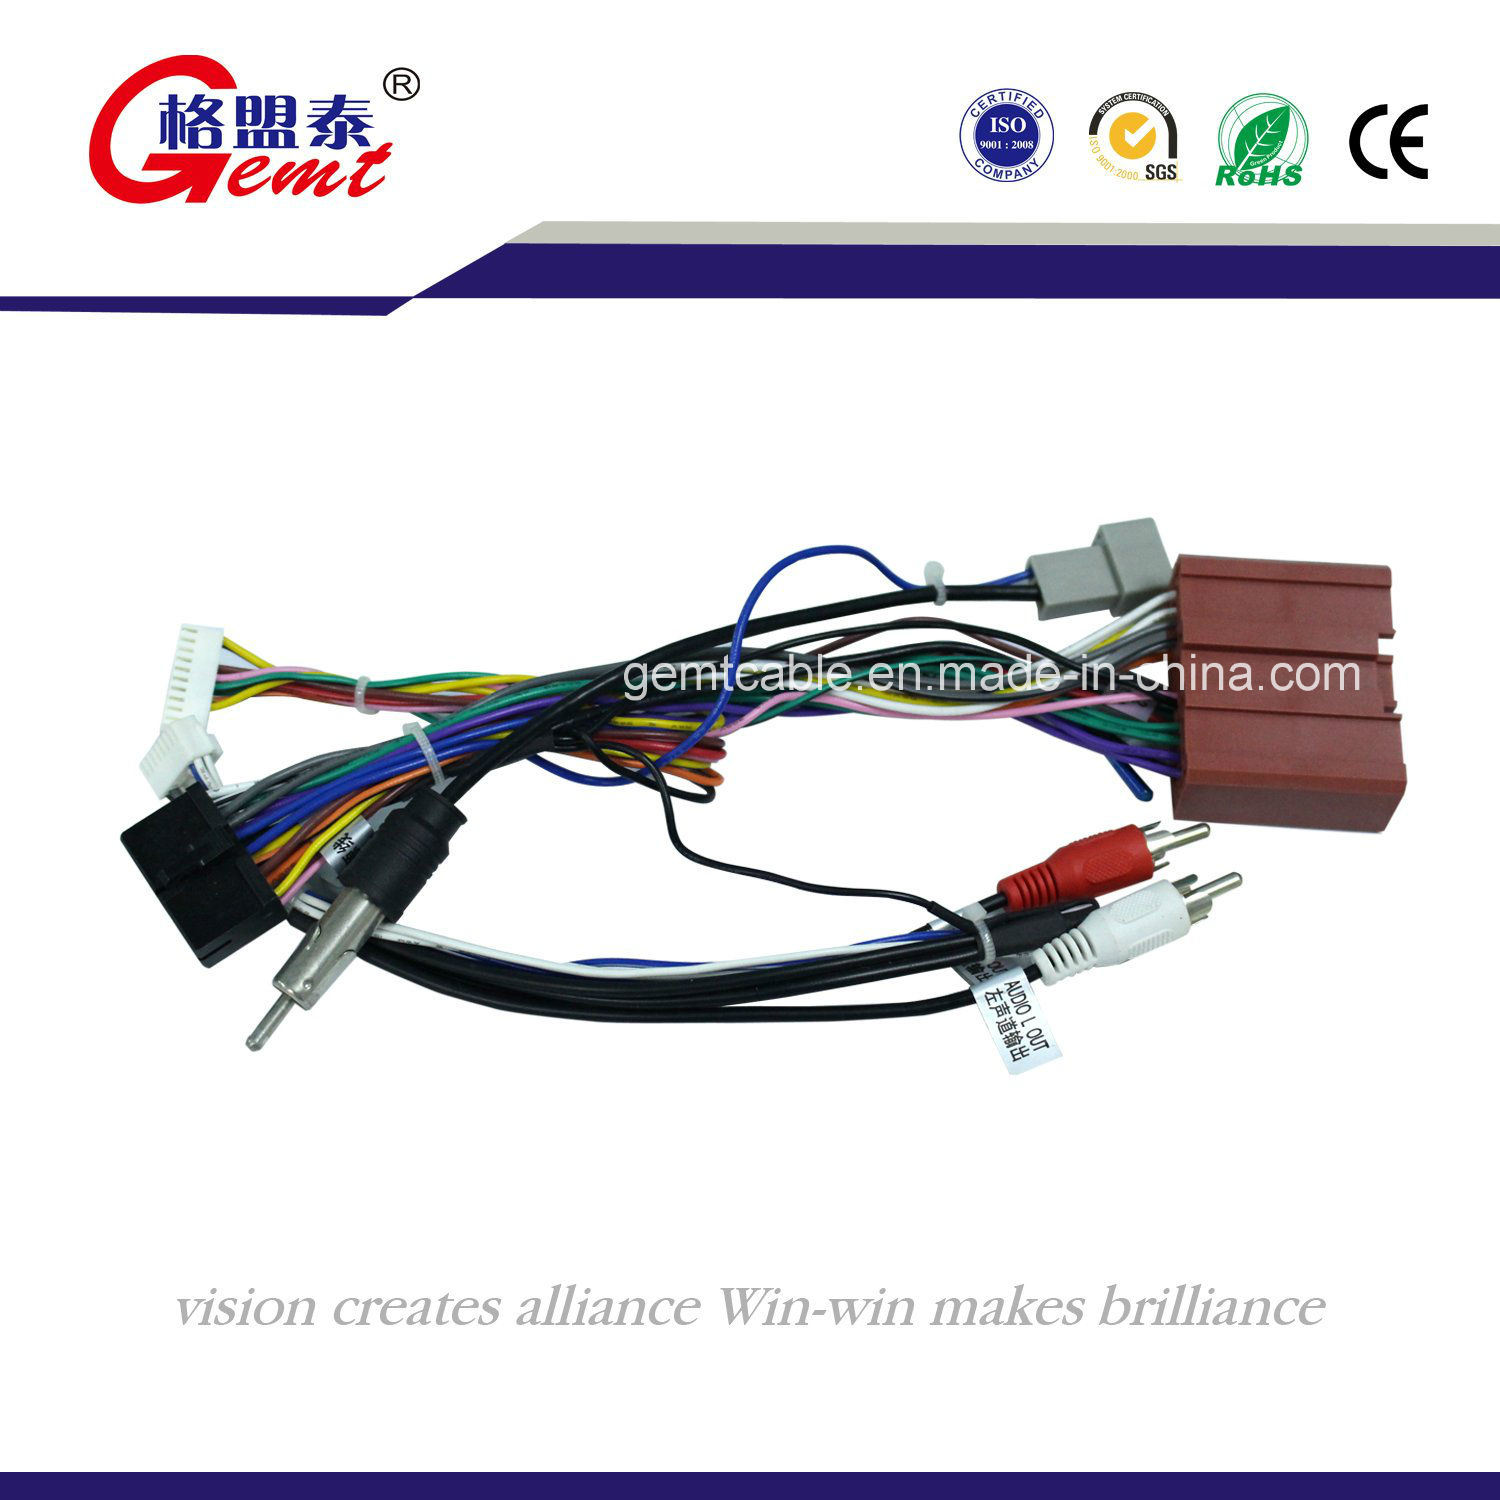 China Dongfeng Fengguang F505 Honda Automotive Wiring Harness Electrical For Auto Cable Battery